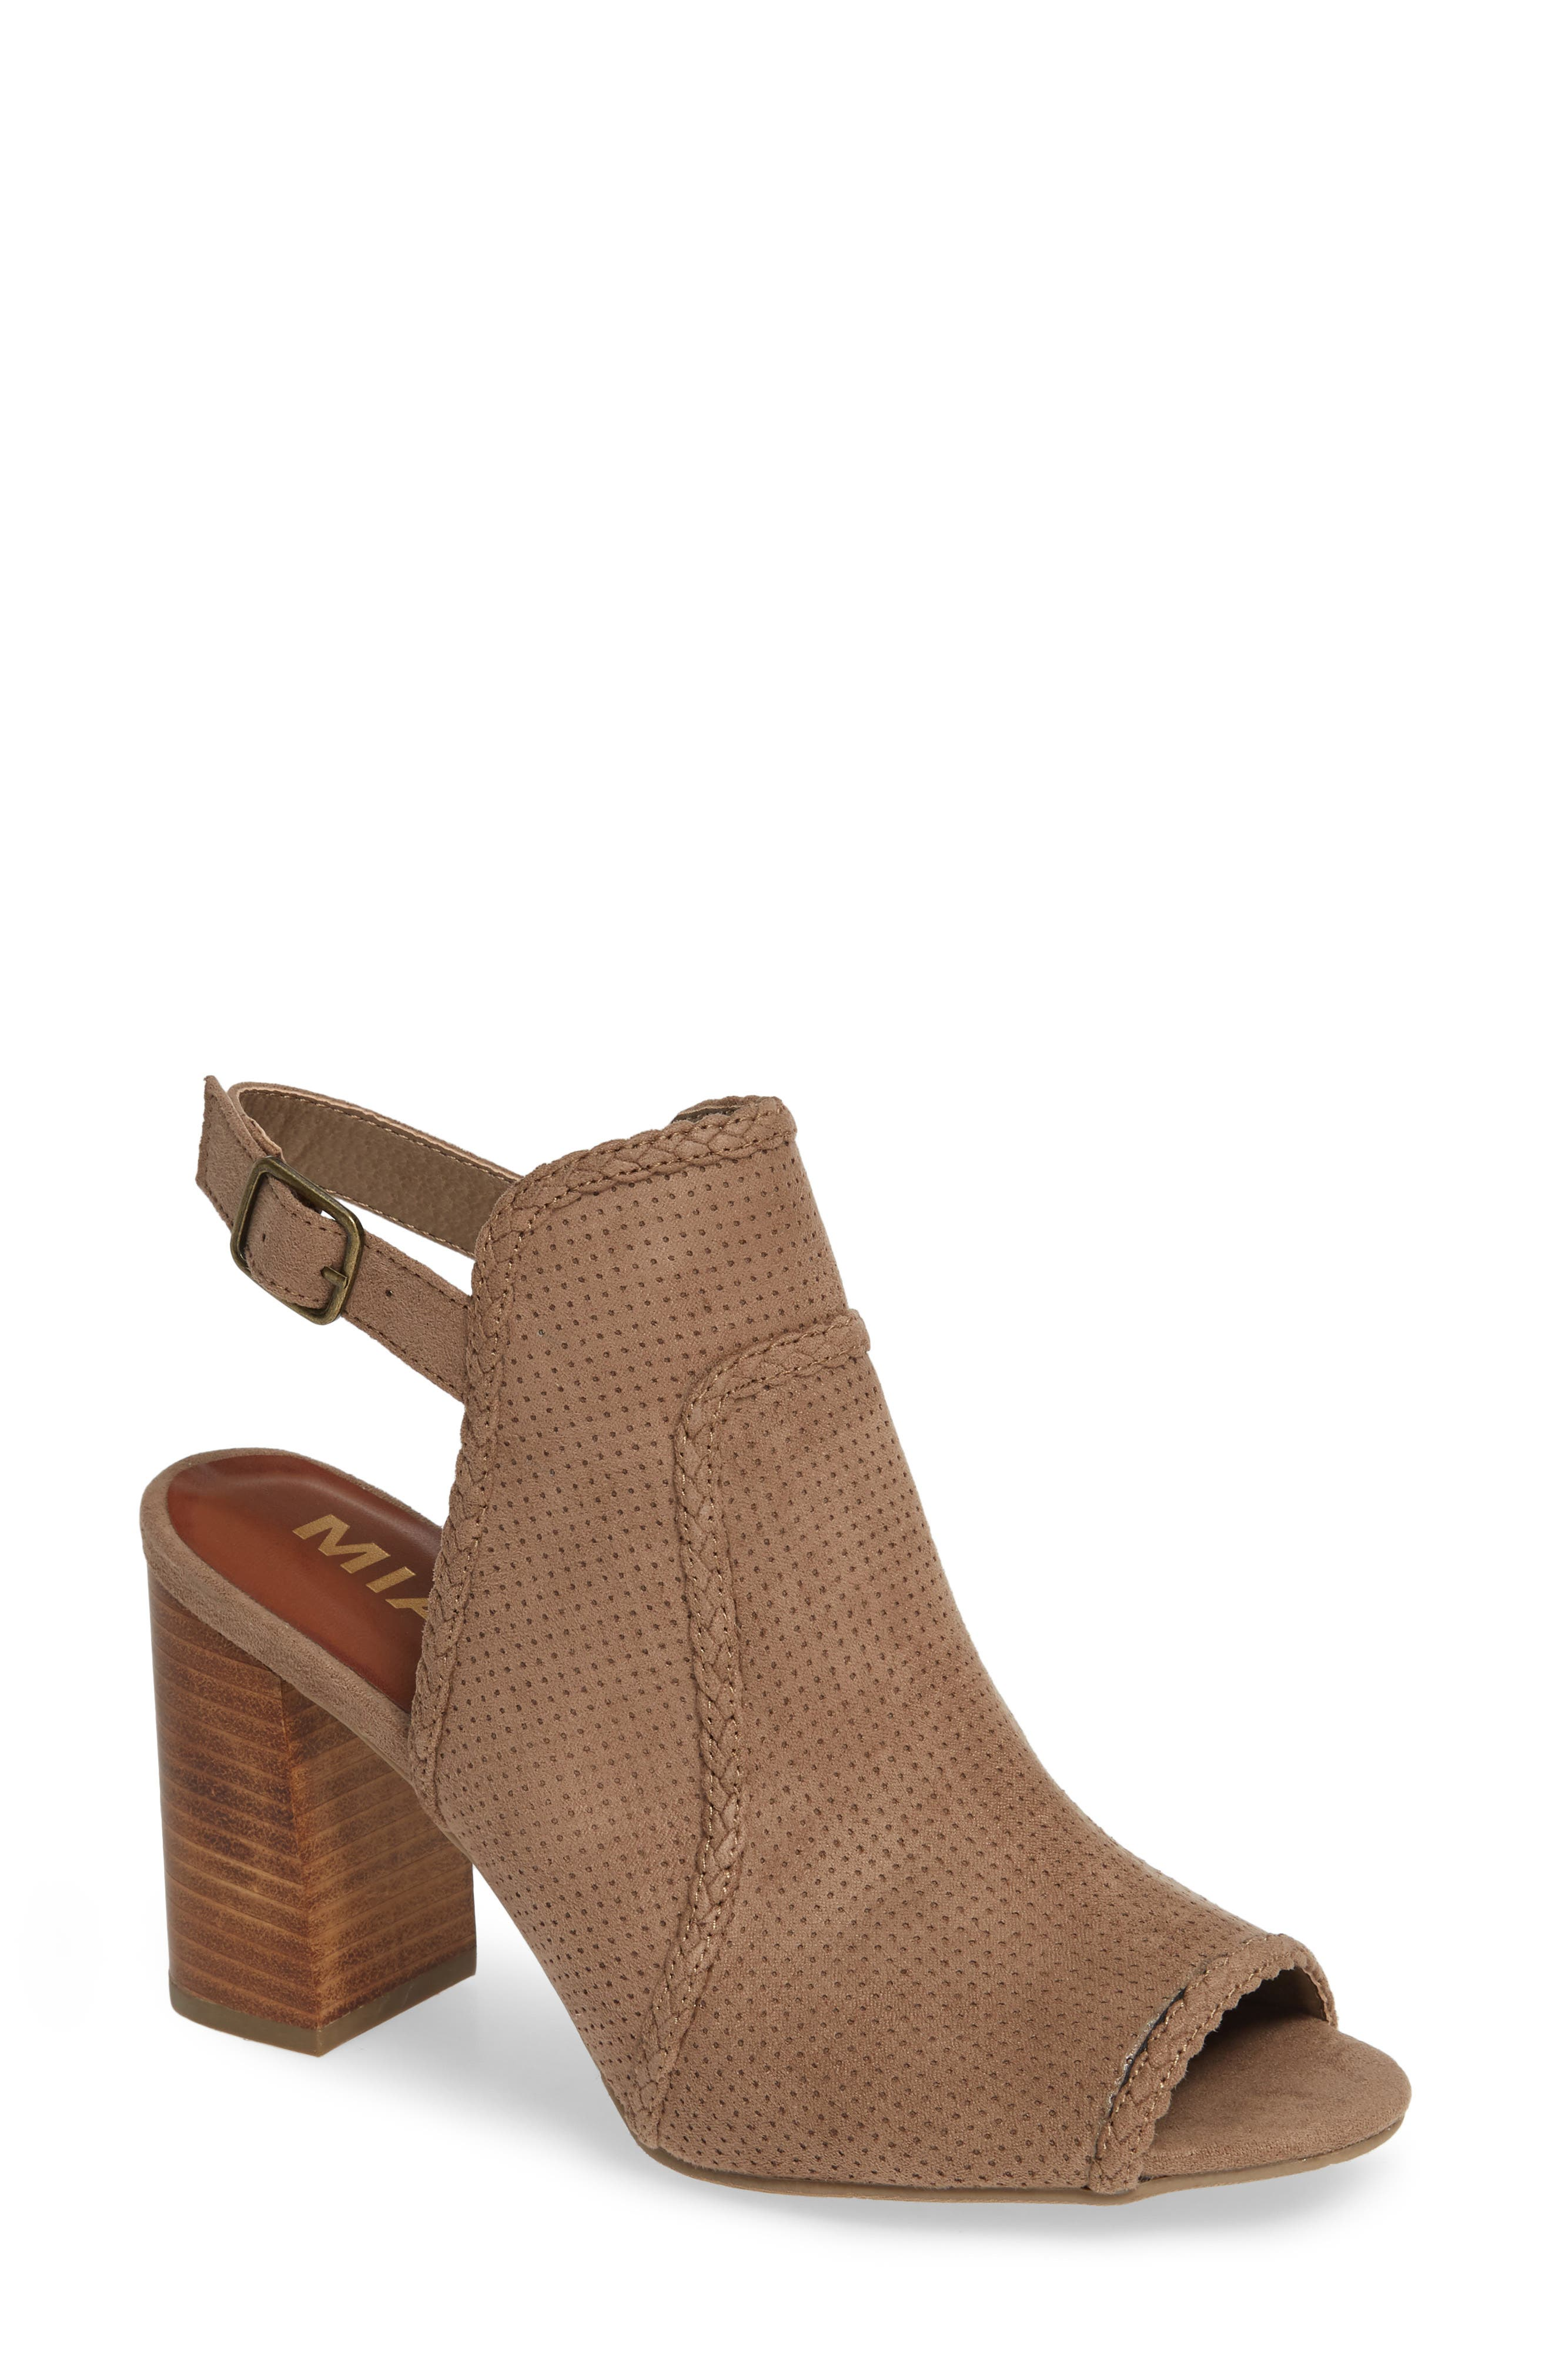 Mia Pat Perforated Open Toe Bootie- Brown